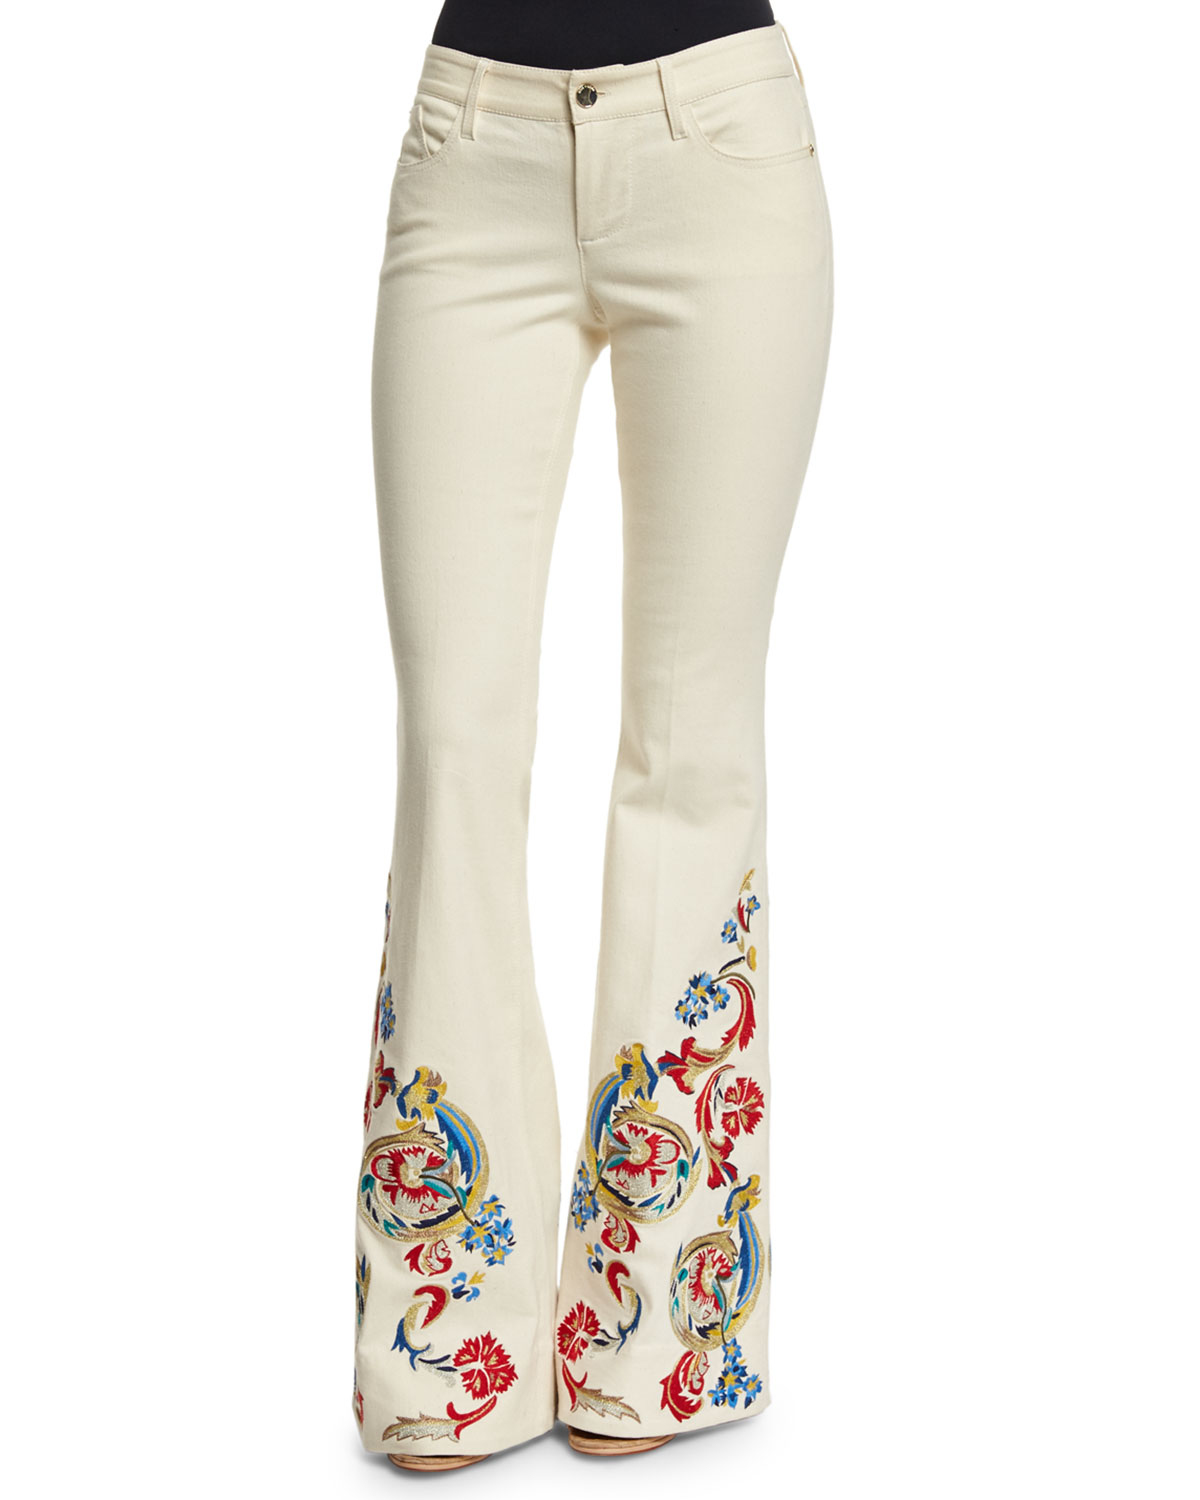 Alice + Olivia Ryley Low-Rise Embroidered Flare Jeans, Cream/Multicolor |  Neiman Marcus